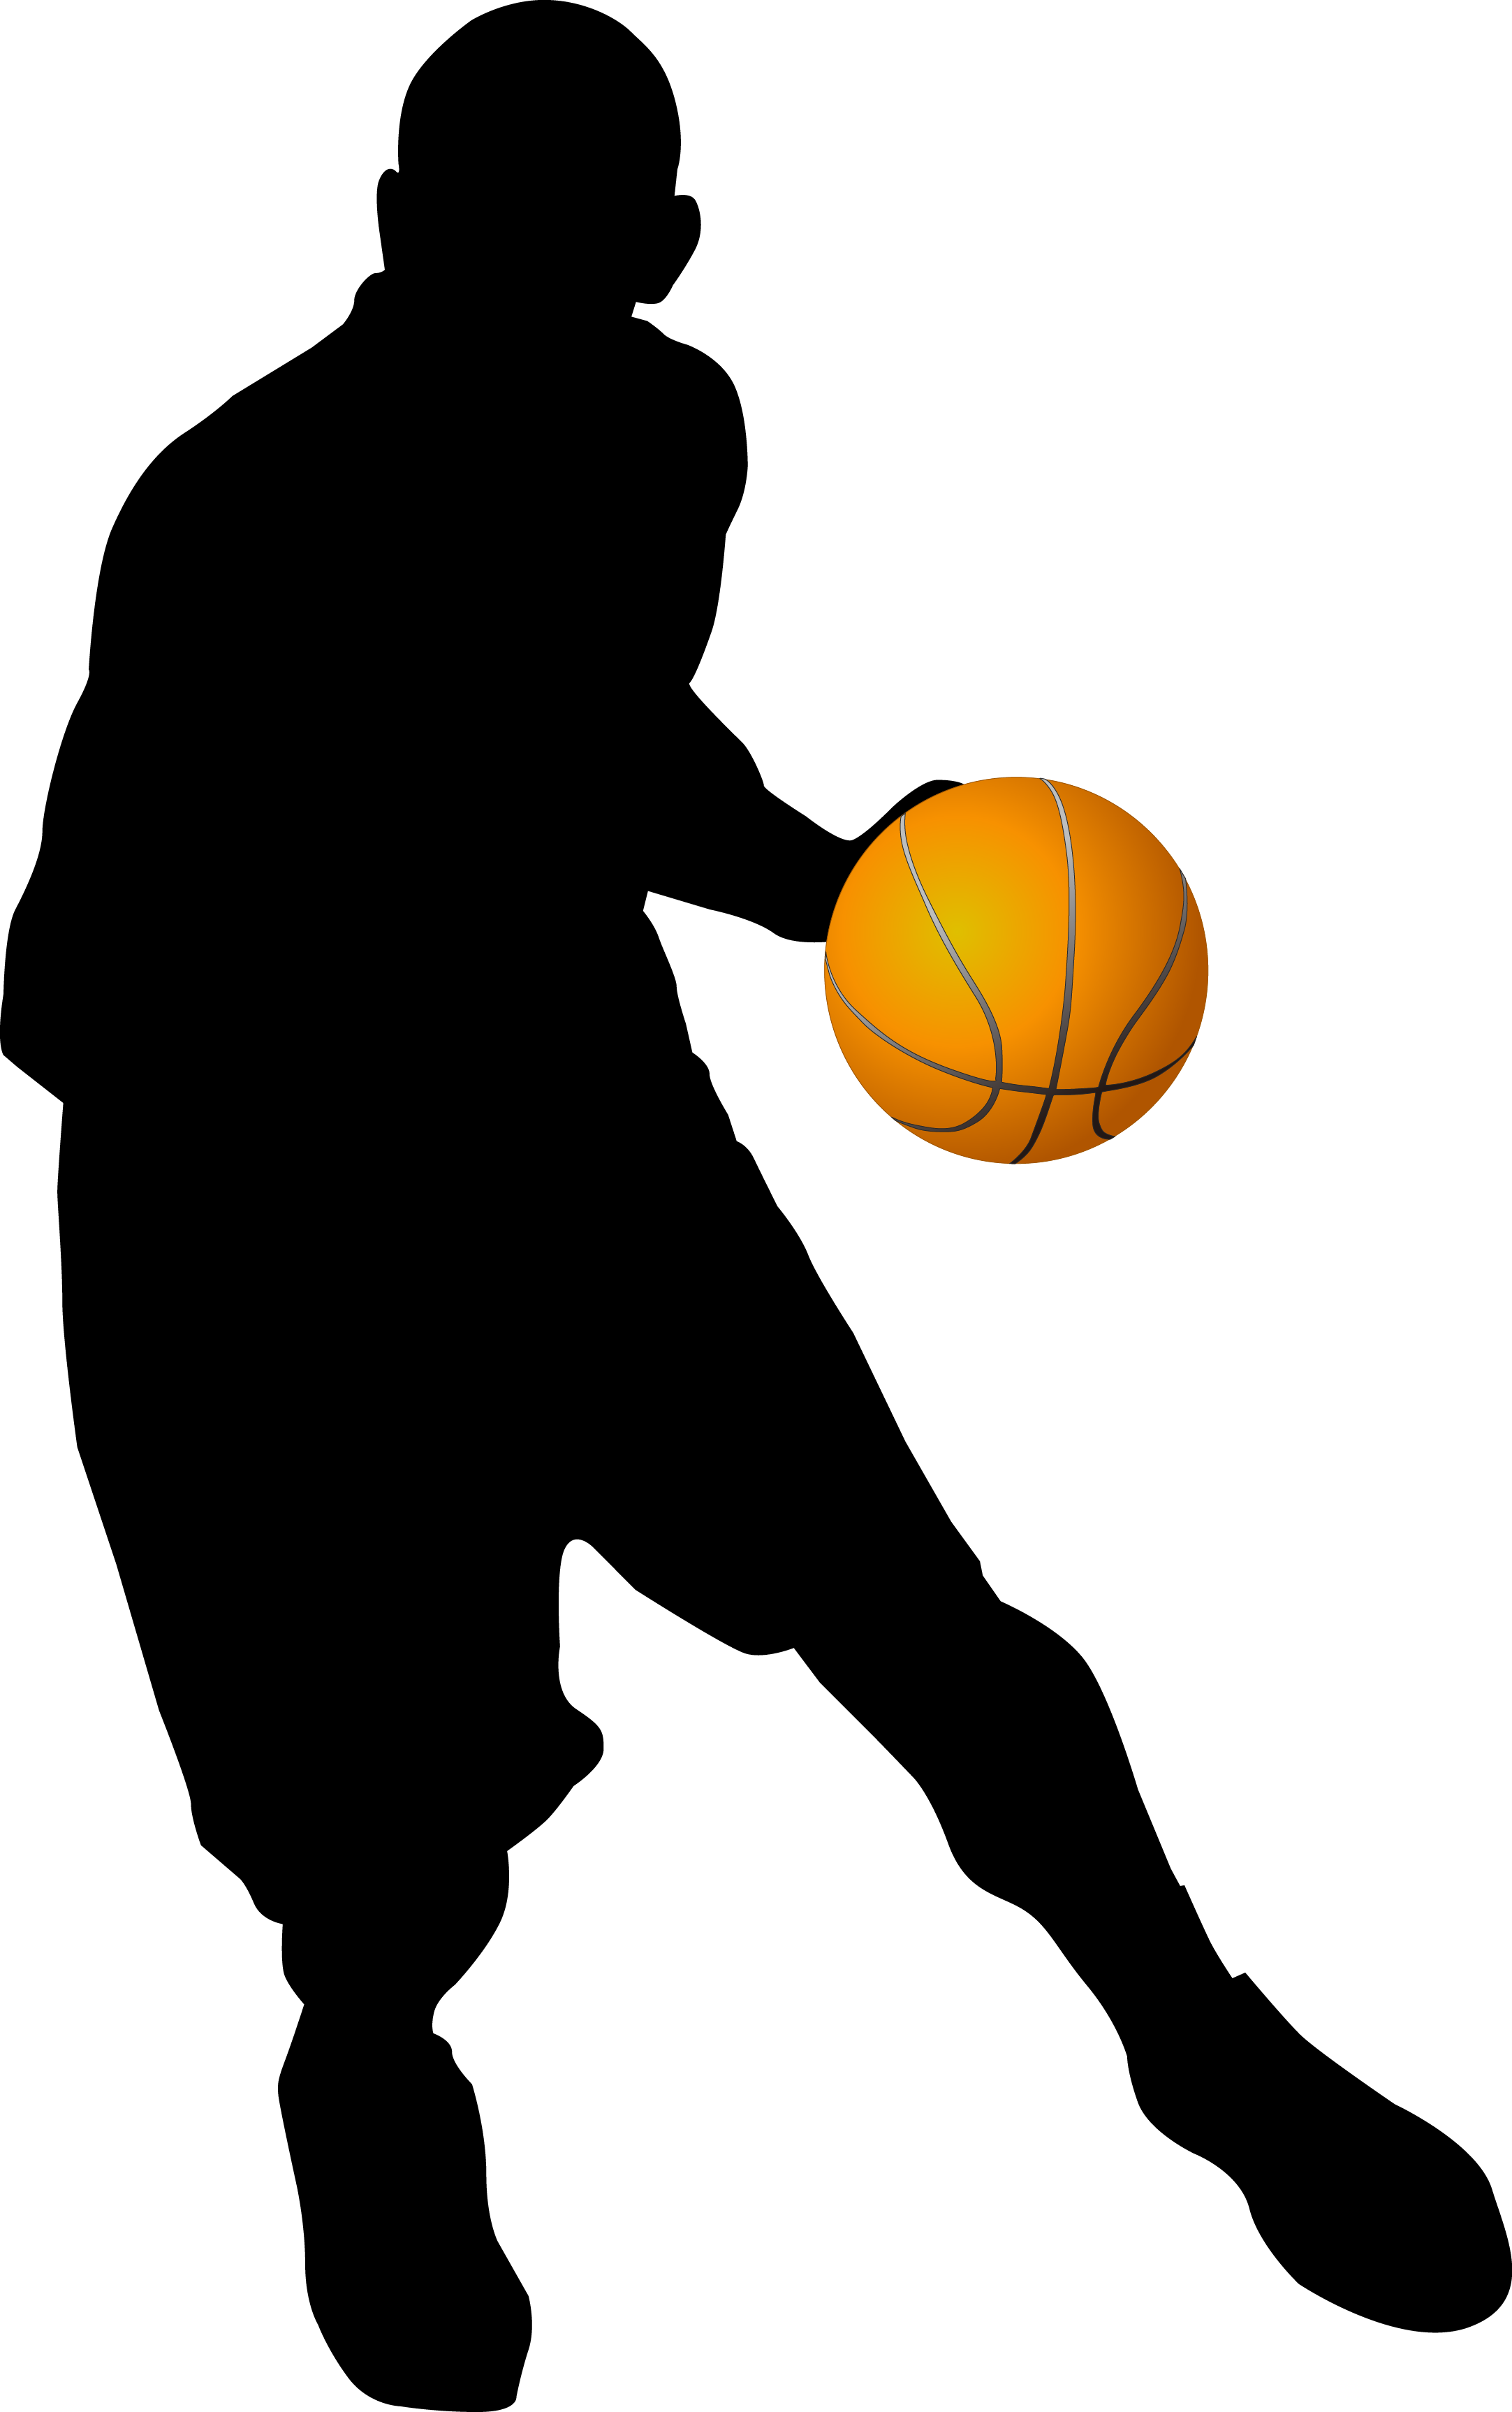 Basketball players clipart free clip art freeuse stock Chicago Bulls Basketball player Clip art - Basketball player 2165 ... clip art freeuse stock